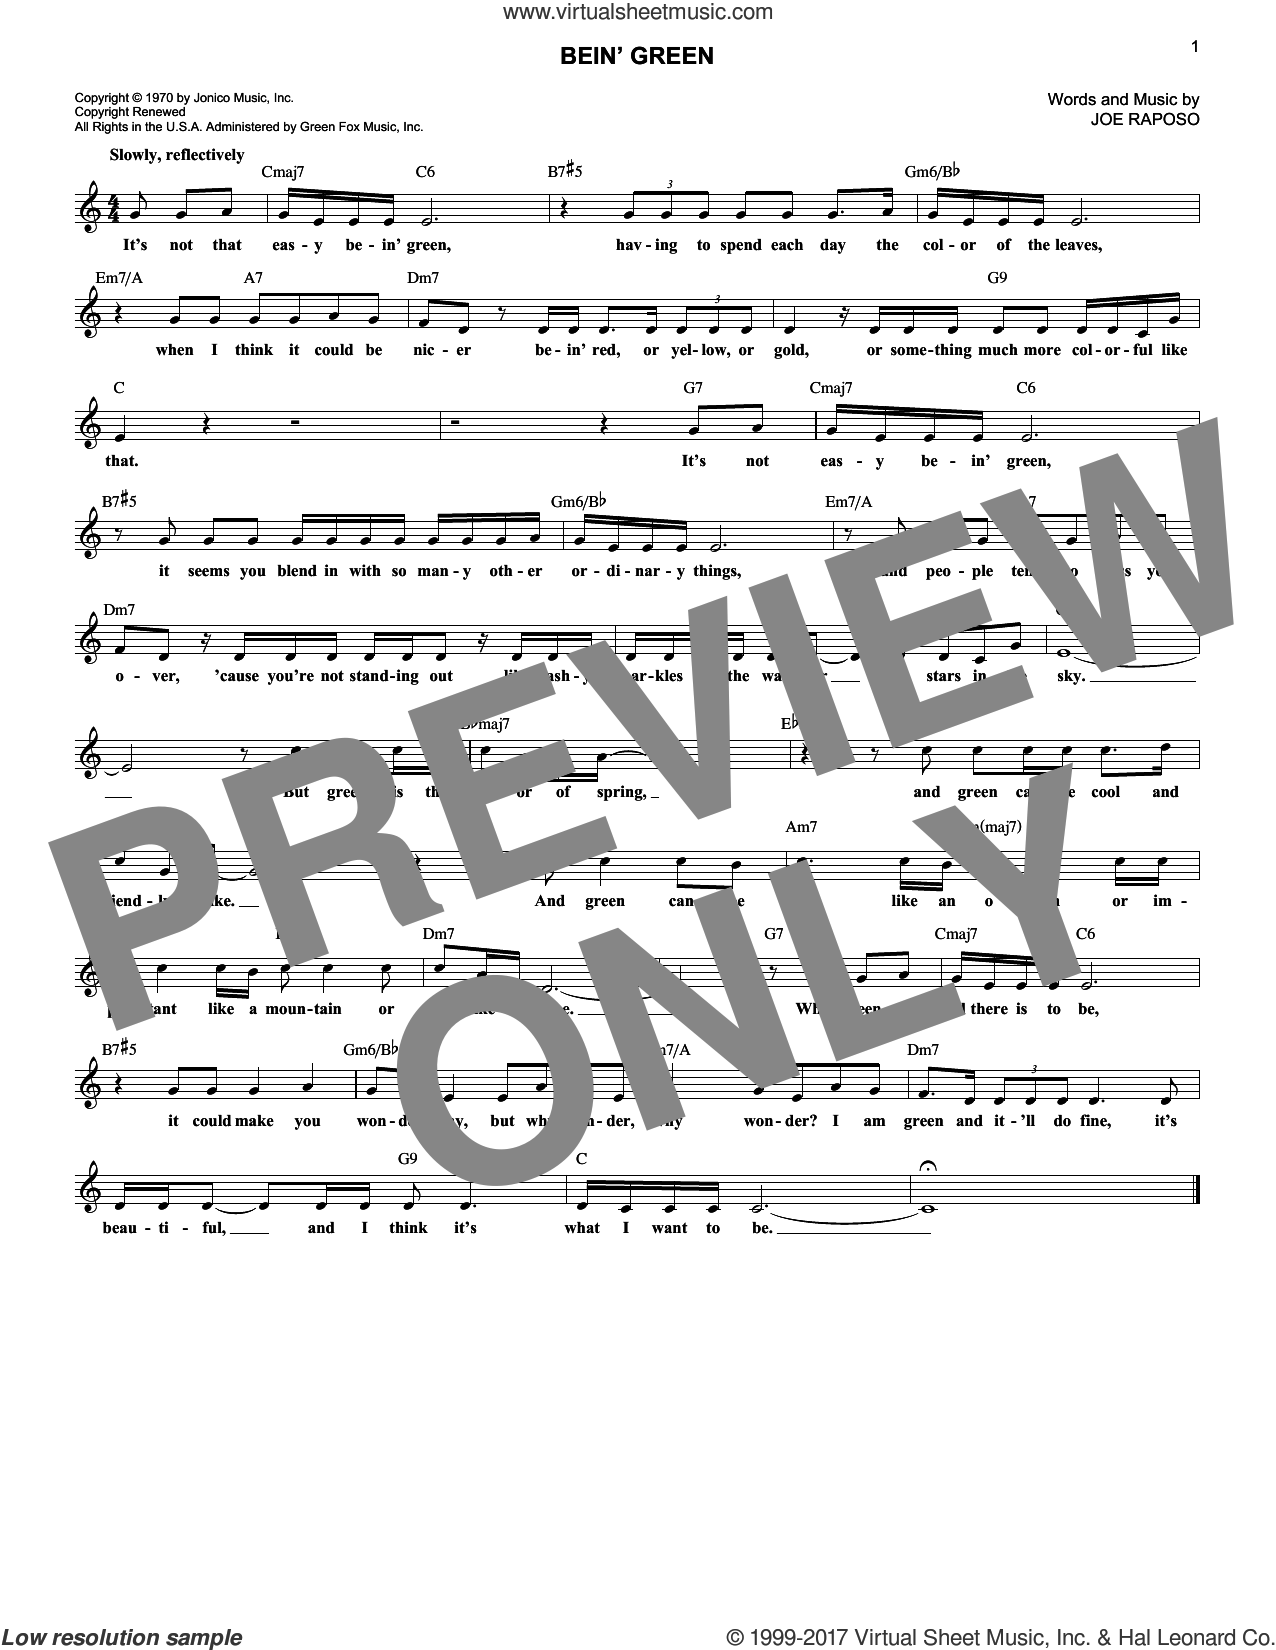 Bein' Green sheet music for voice and other instruments (fake book) by Joe Raposo, Frank Sinatra and Kermit The Frog, intermediate skill level